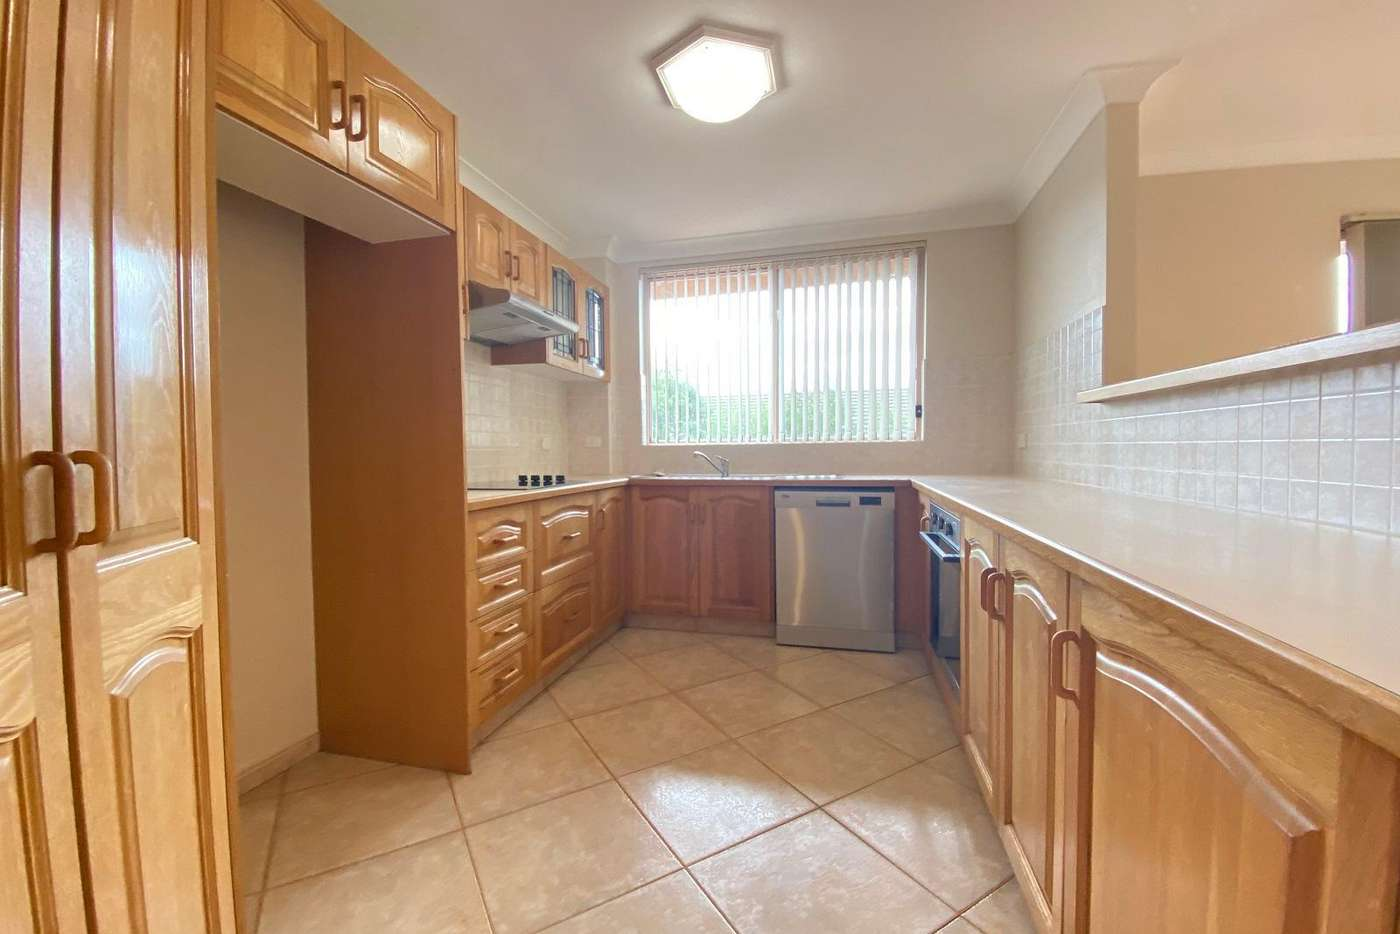 Sixth view of Homely apartment listing, 9/2 Edward Street, Wollongong NSW 2500